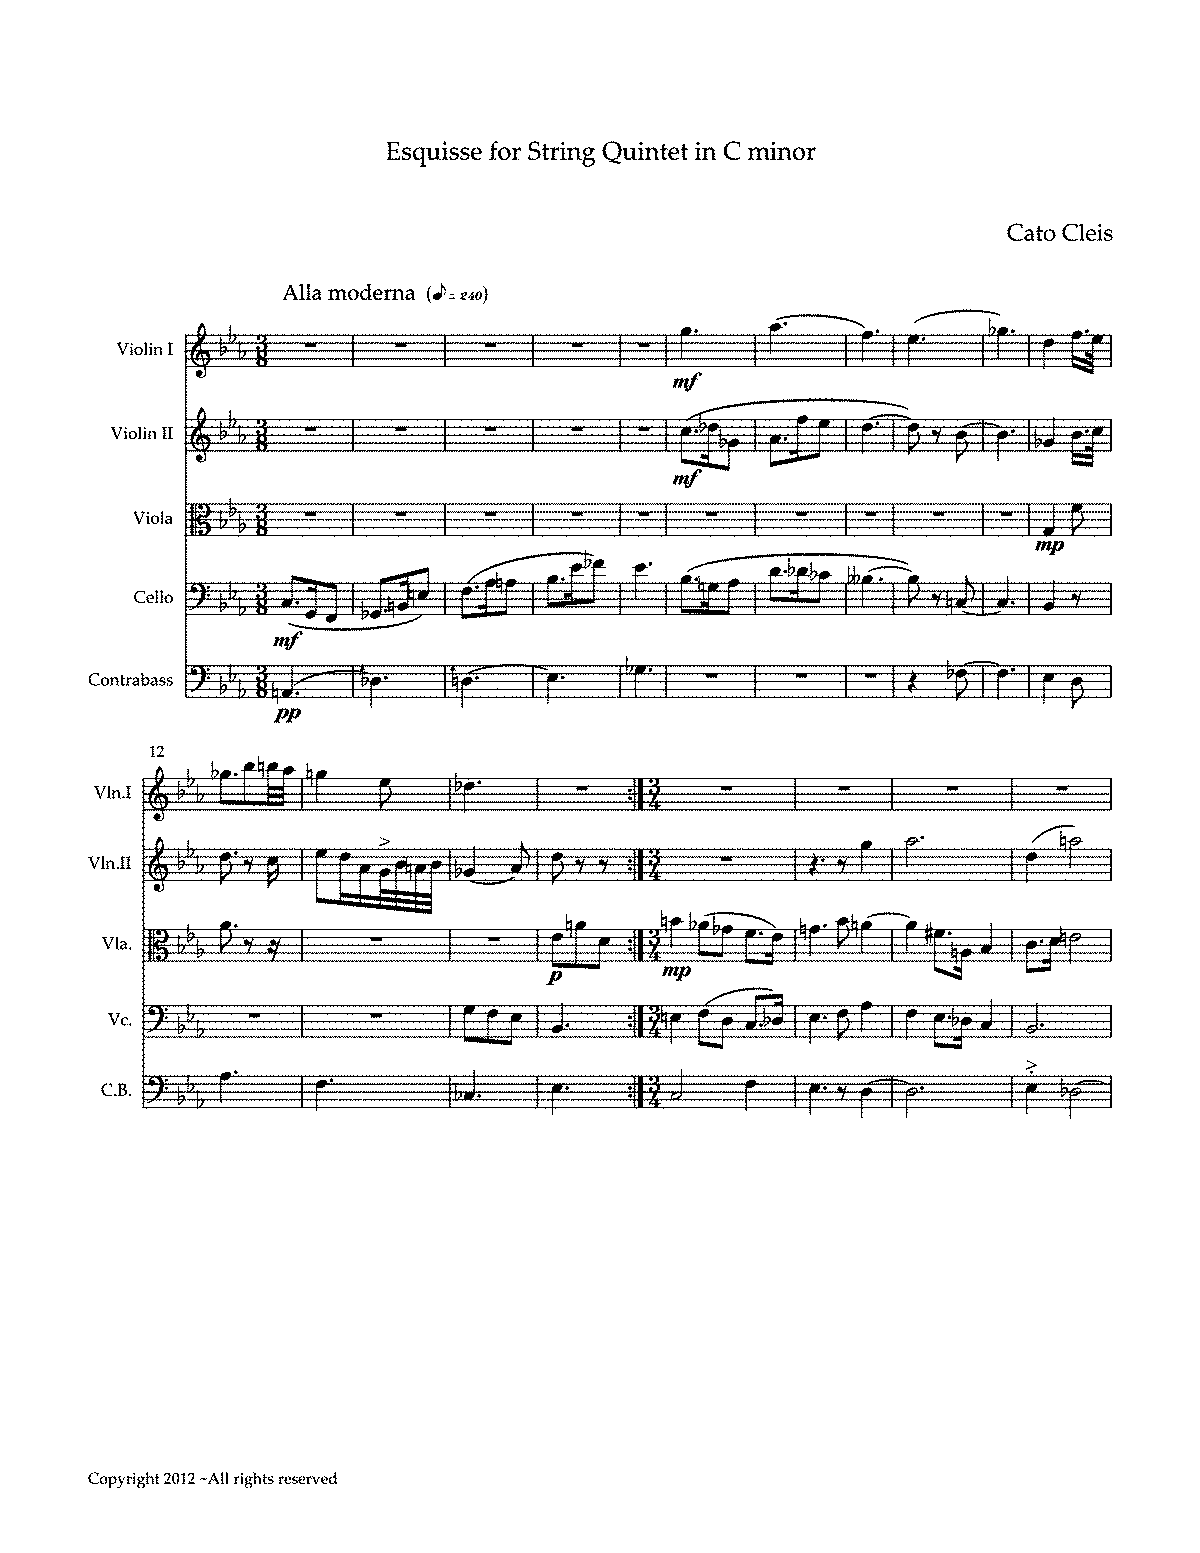 PMLP417177-Esquisse for String Quintet in C minor by Cato Cleis.pdf